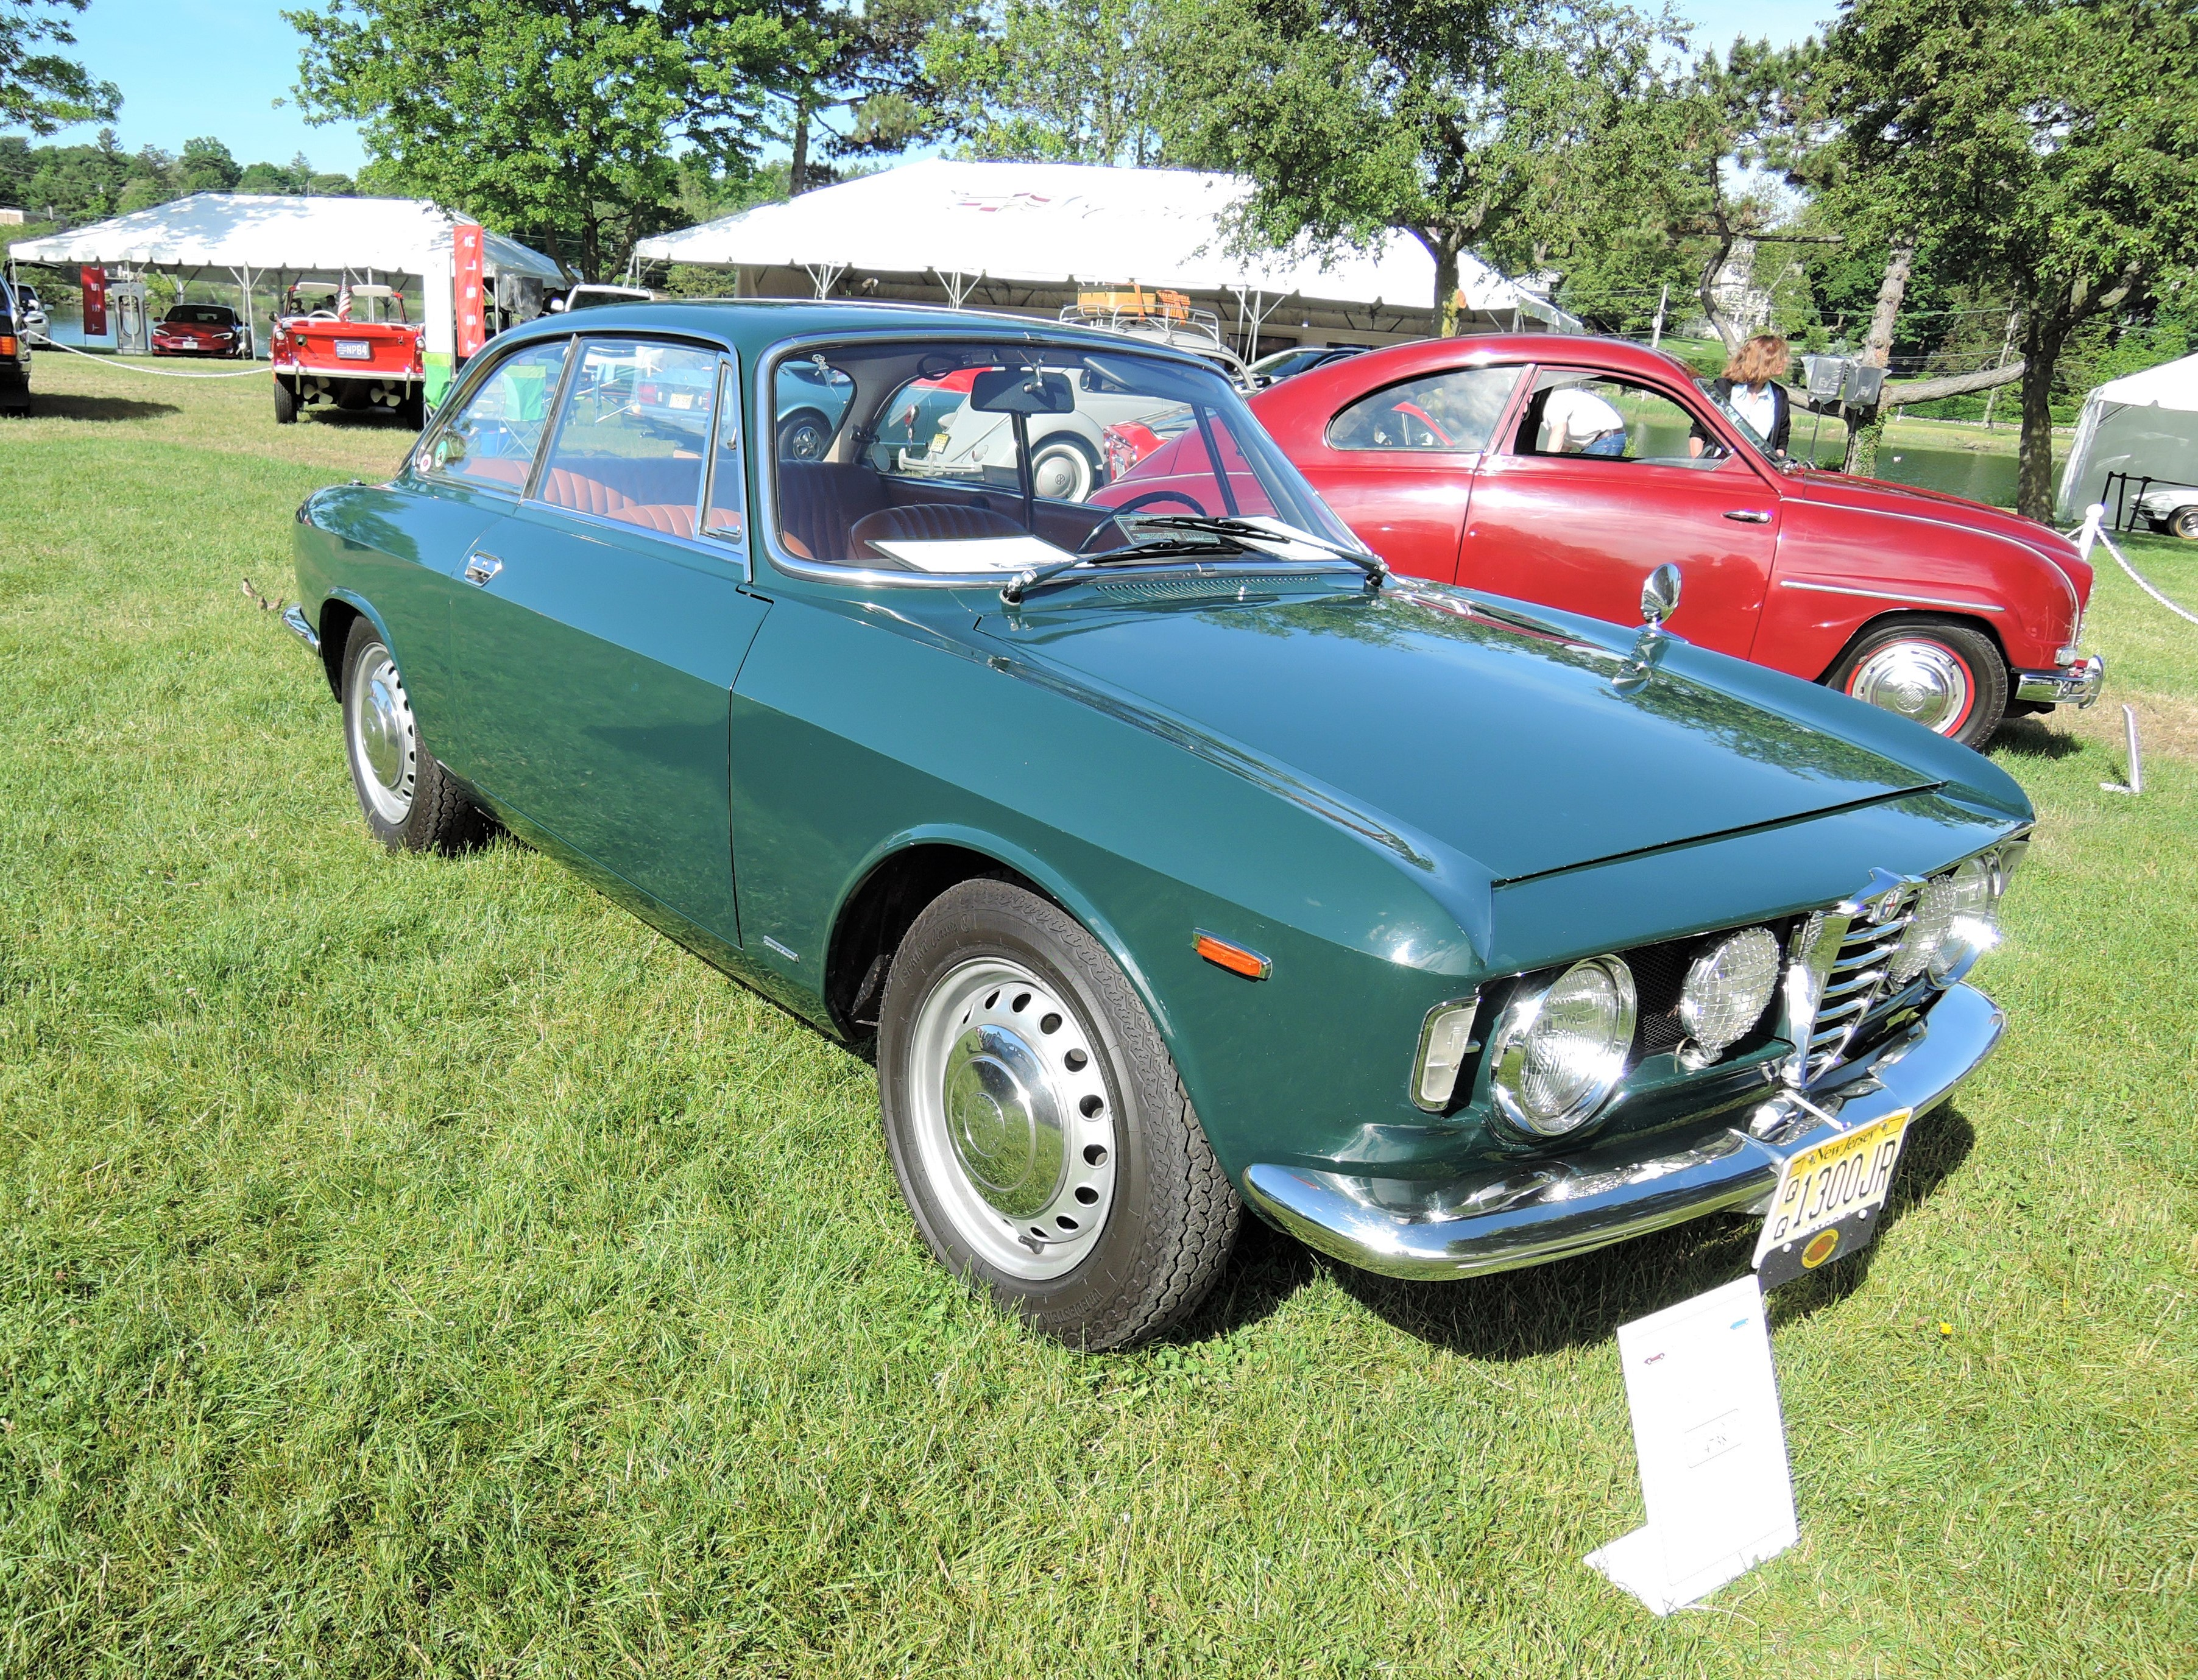 verde green 1967 Alfa Romeo GT 1300 Junior Coupe - Greenwich Concours d'Elegance 2017